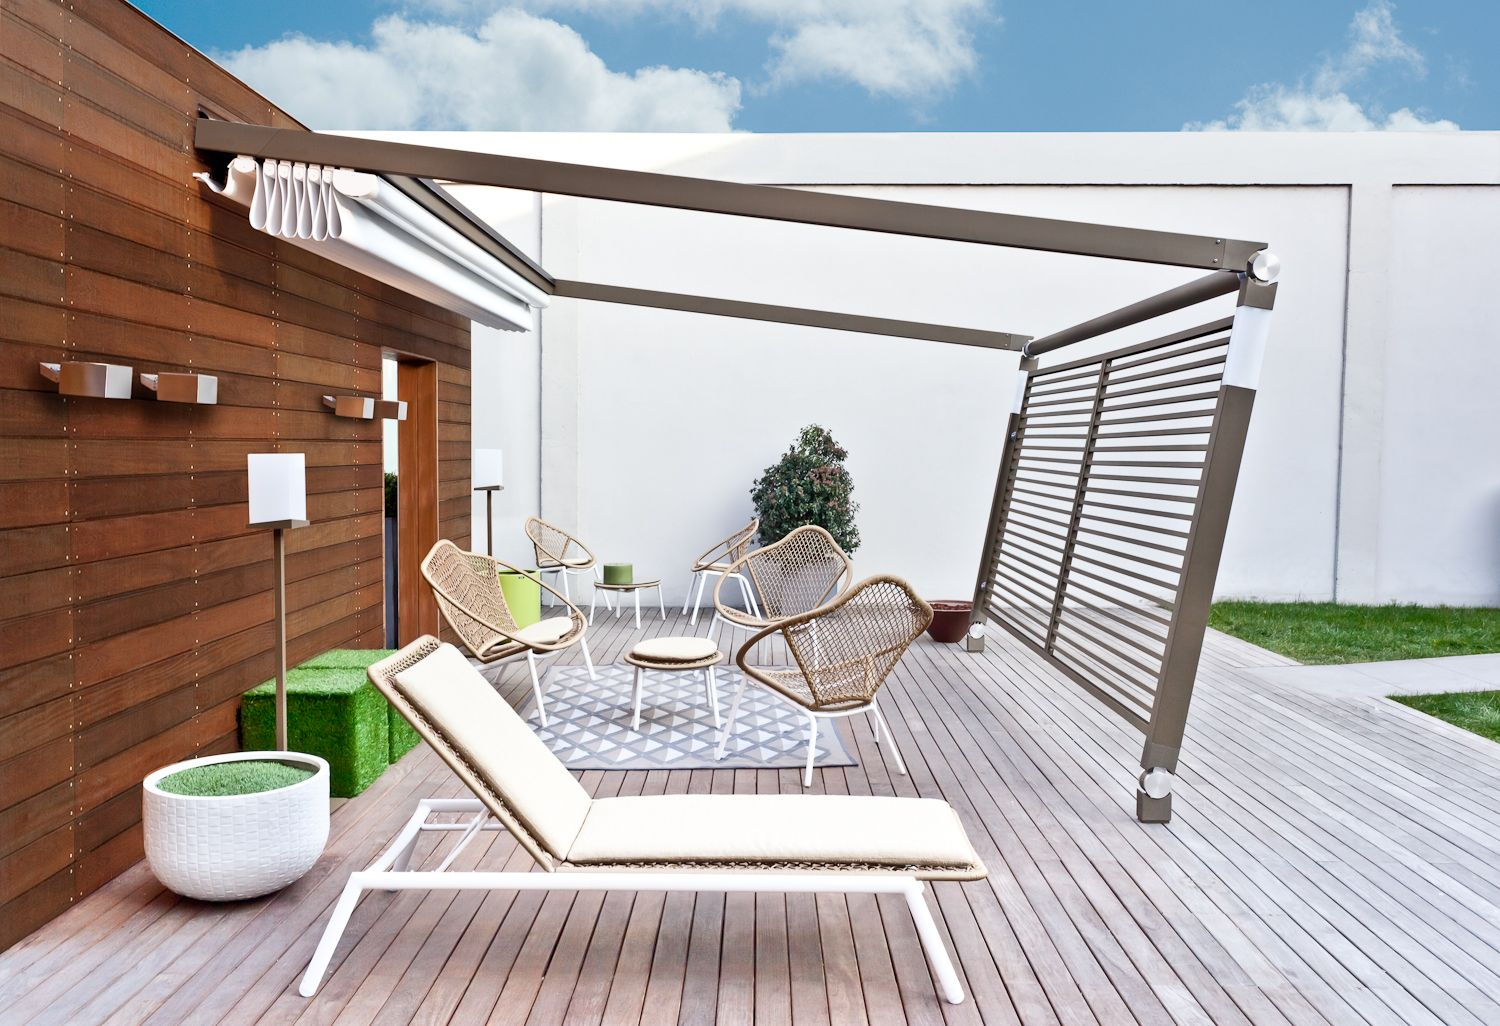 Pergotenda sun shade by corradi can use without metal for Sun shade structure